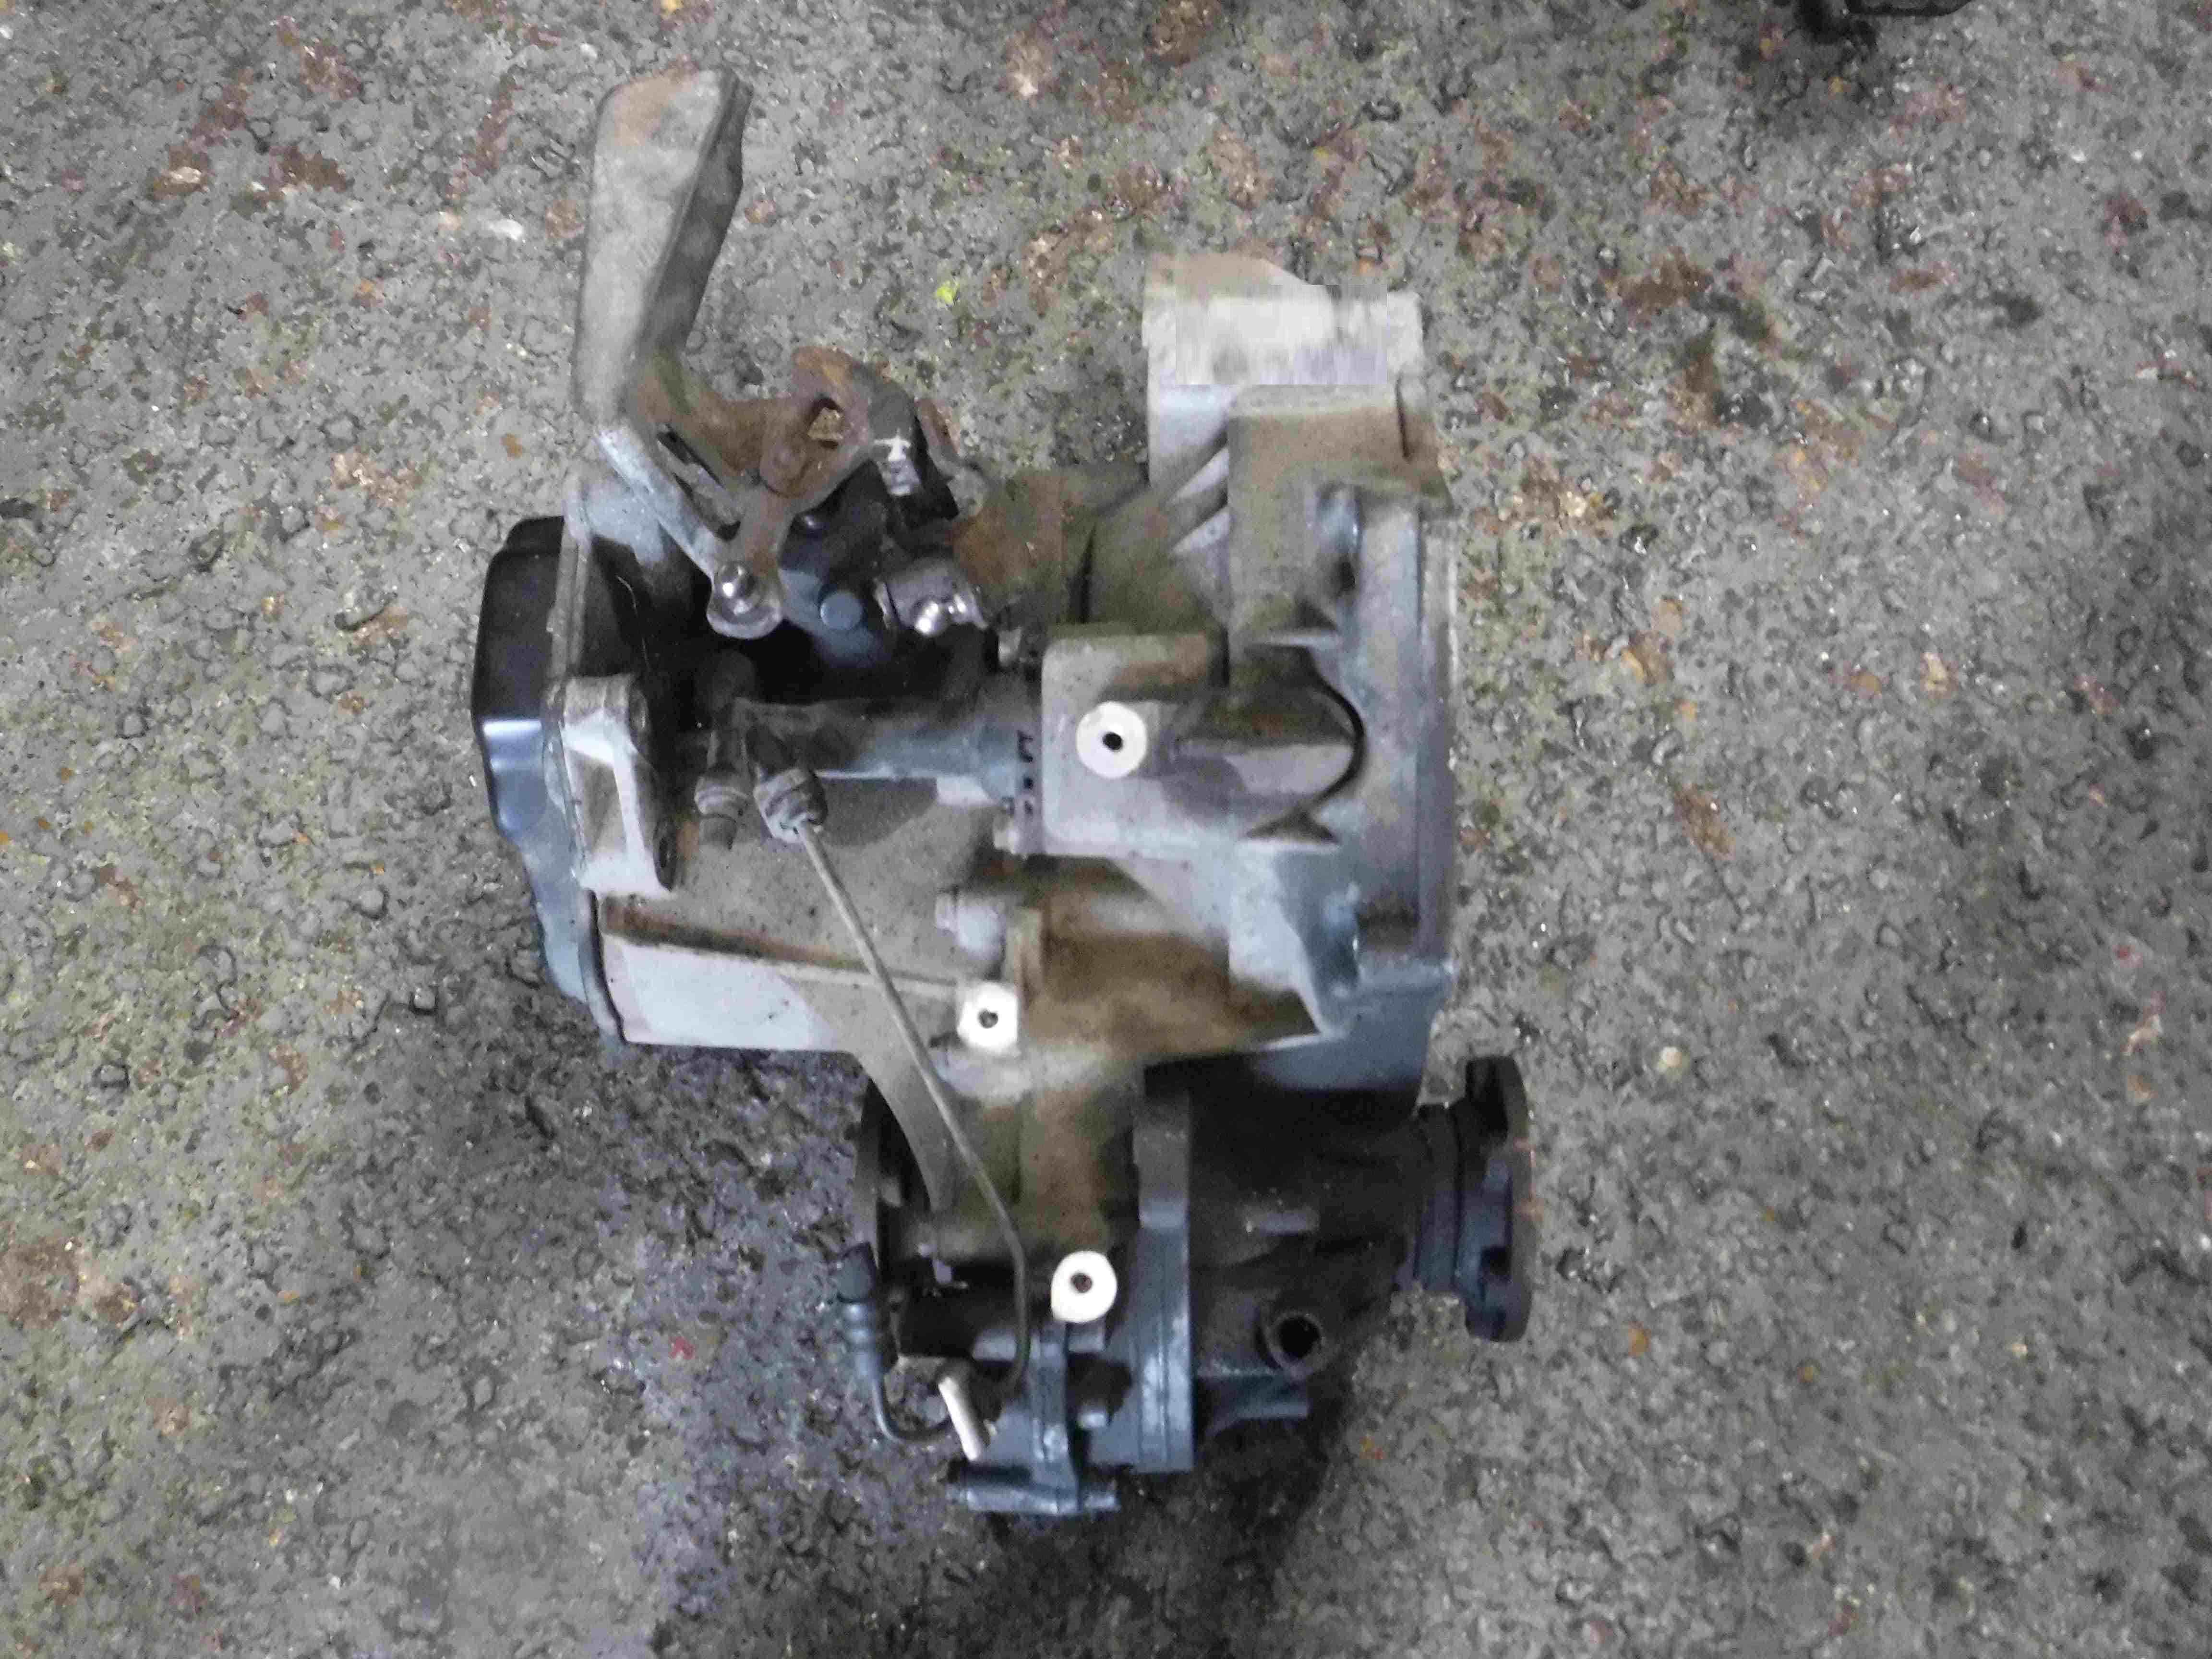 Volkswagen Polo 2003-2006 9N 1.4 tDi GGV Gearbox